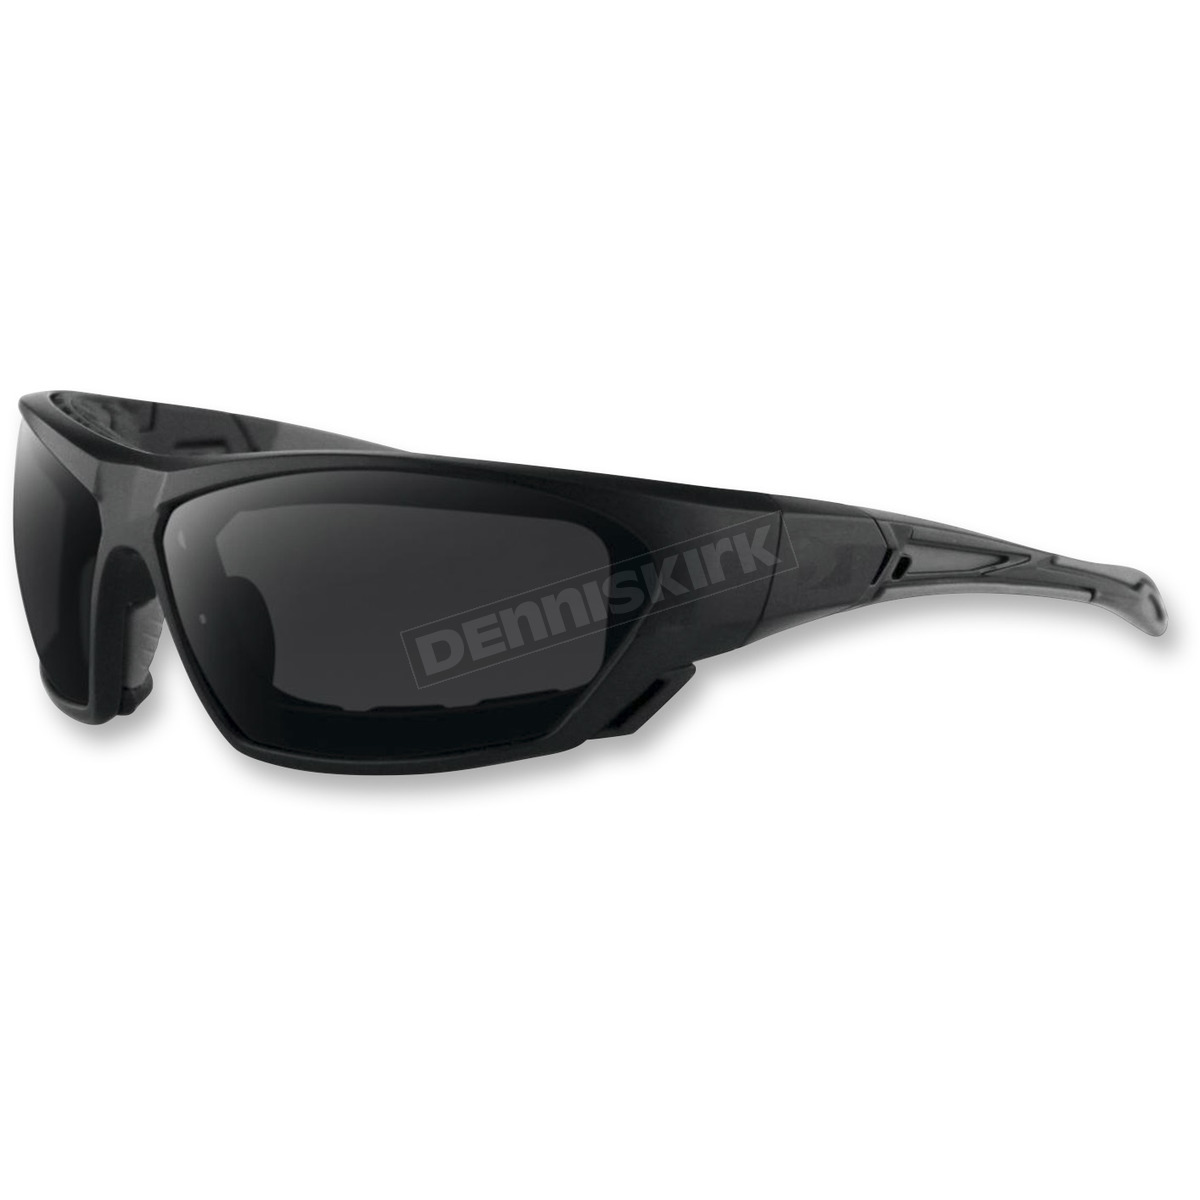 96d35be3242 Bobster Matte Black Crossover Convertible Sunglasses Goggles - BCRS001